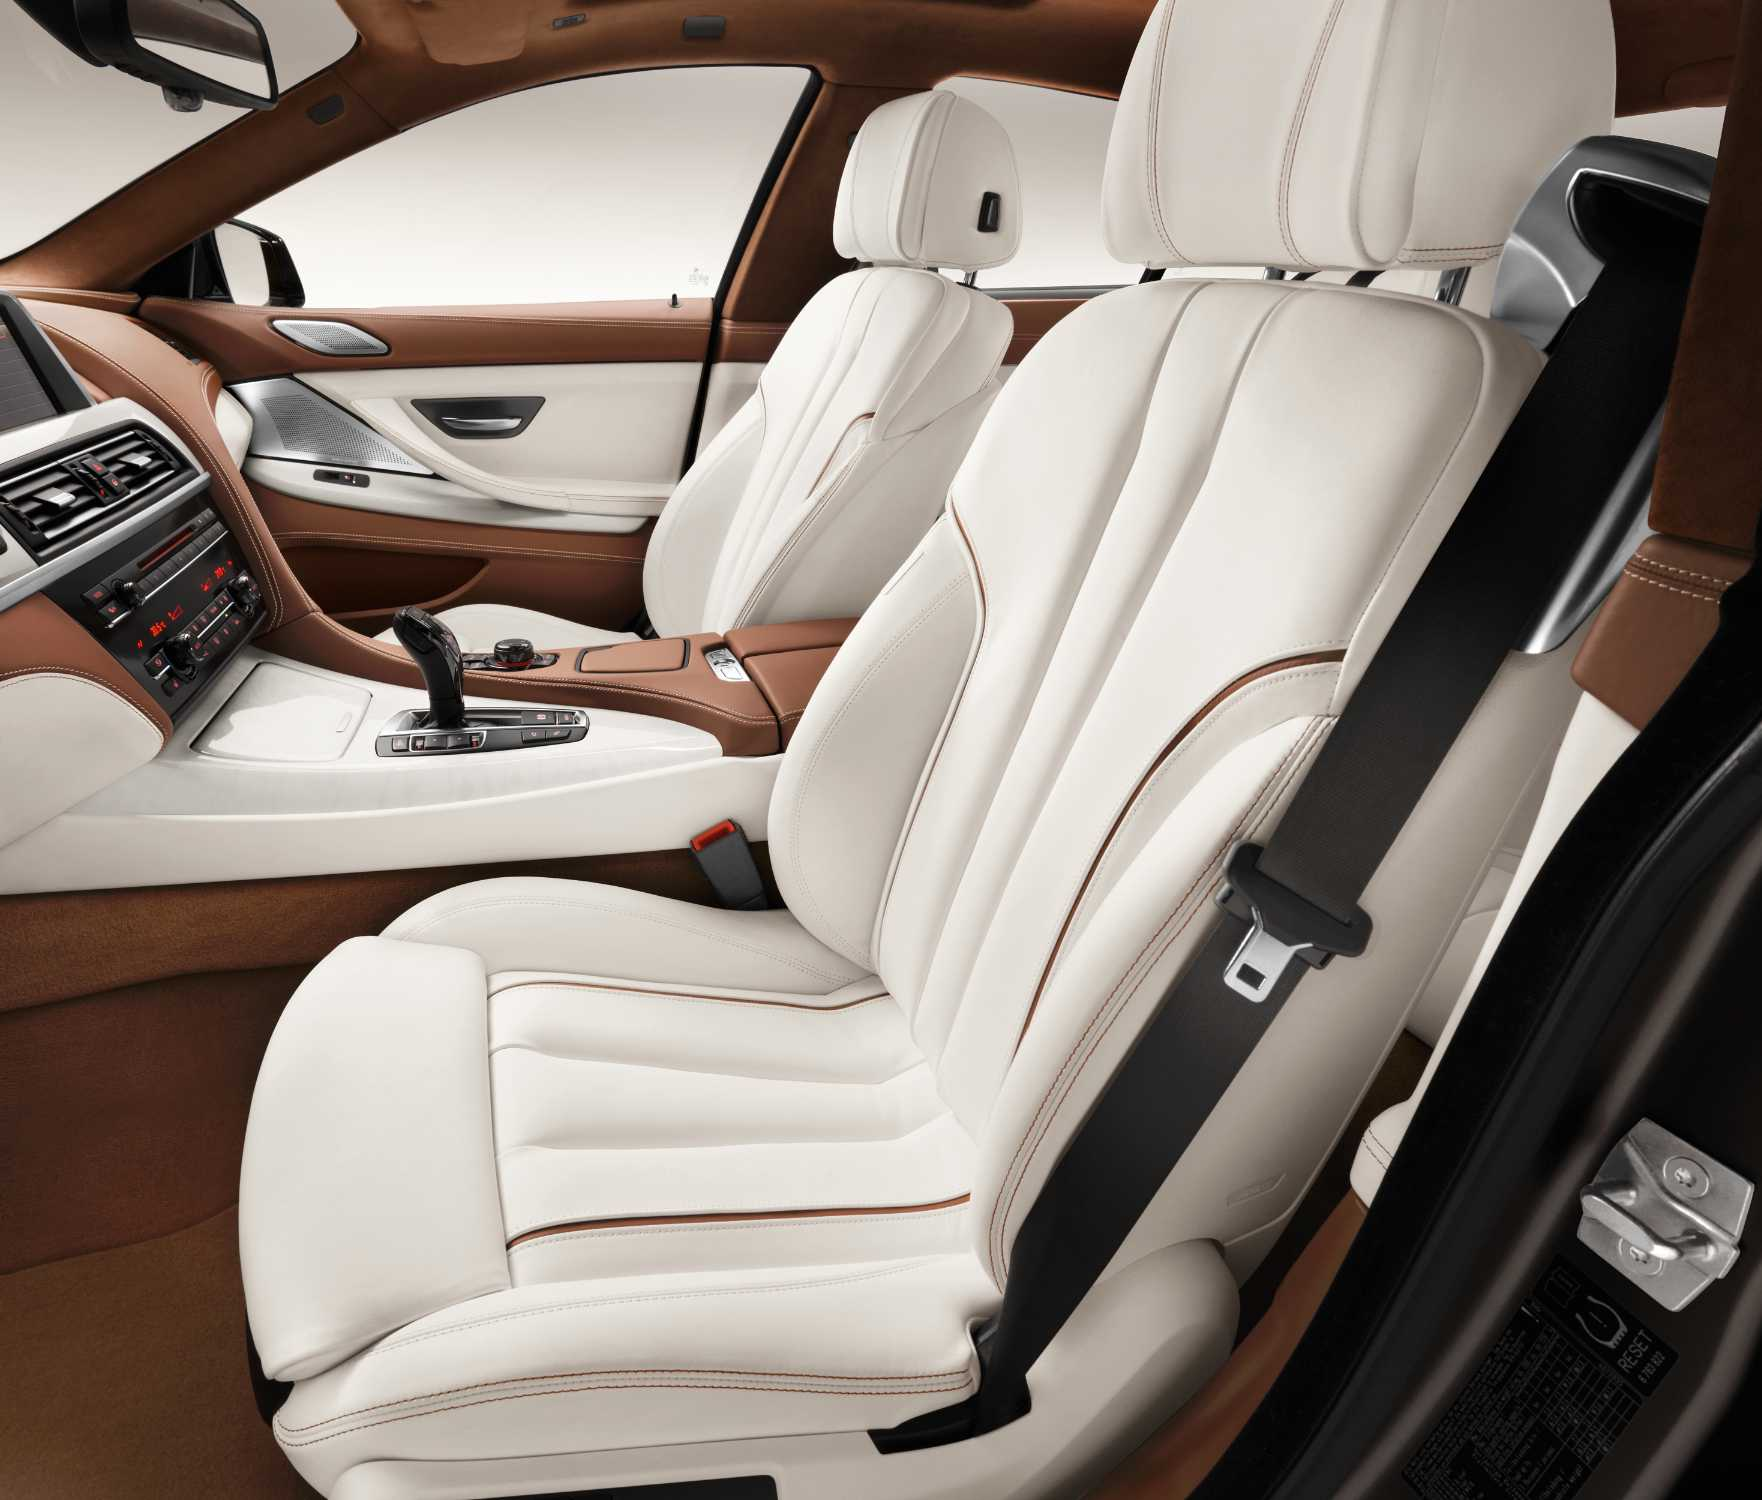 The new bmw 6 series gran coupe interior lightweight seats bmw individual full leather trim - Bmw 650i gran coupe interior ...